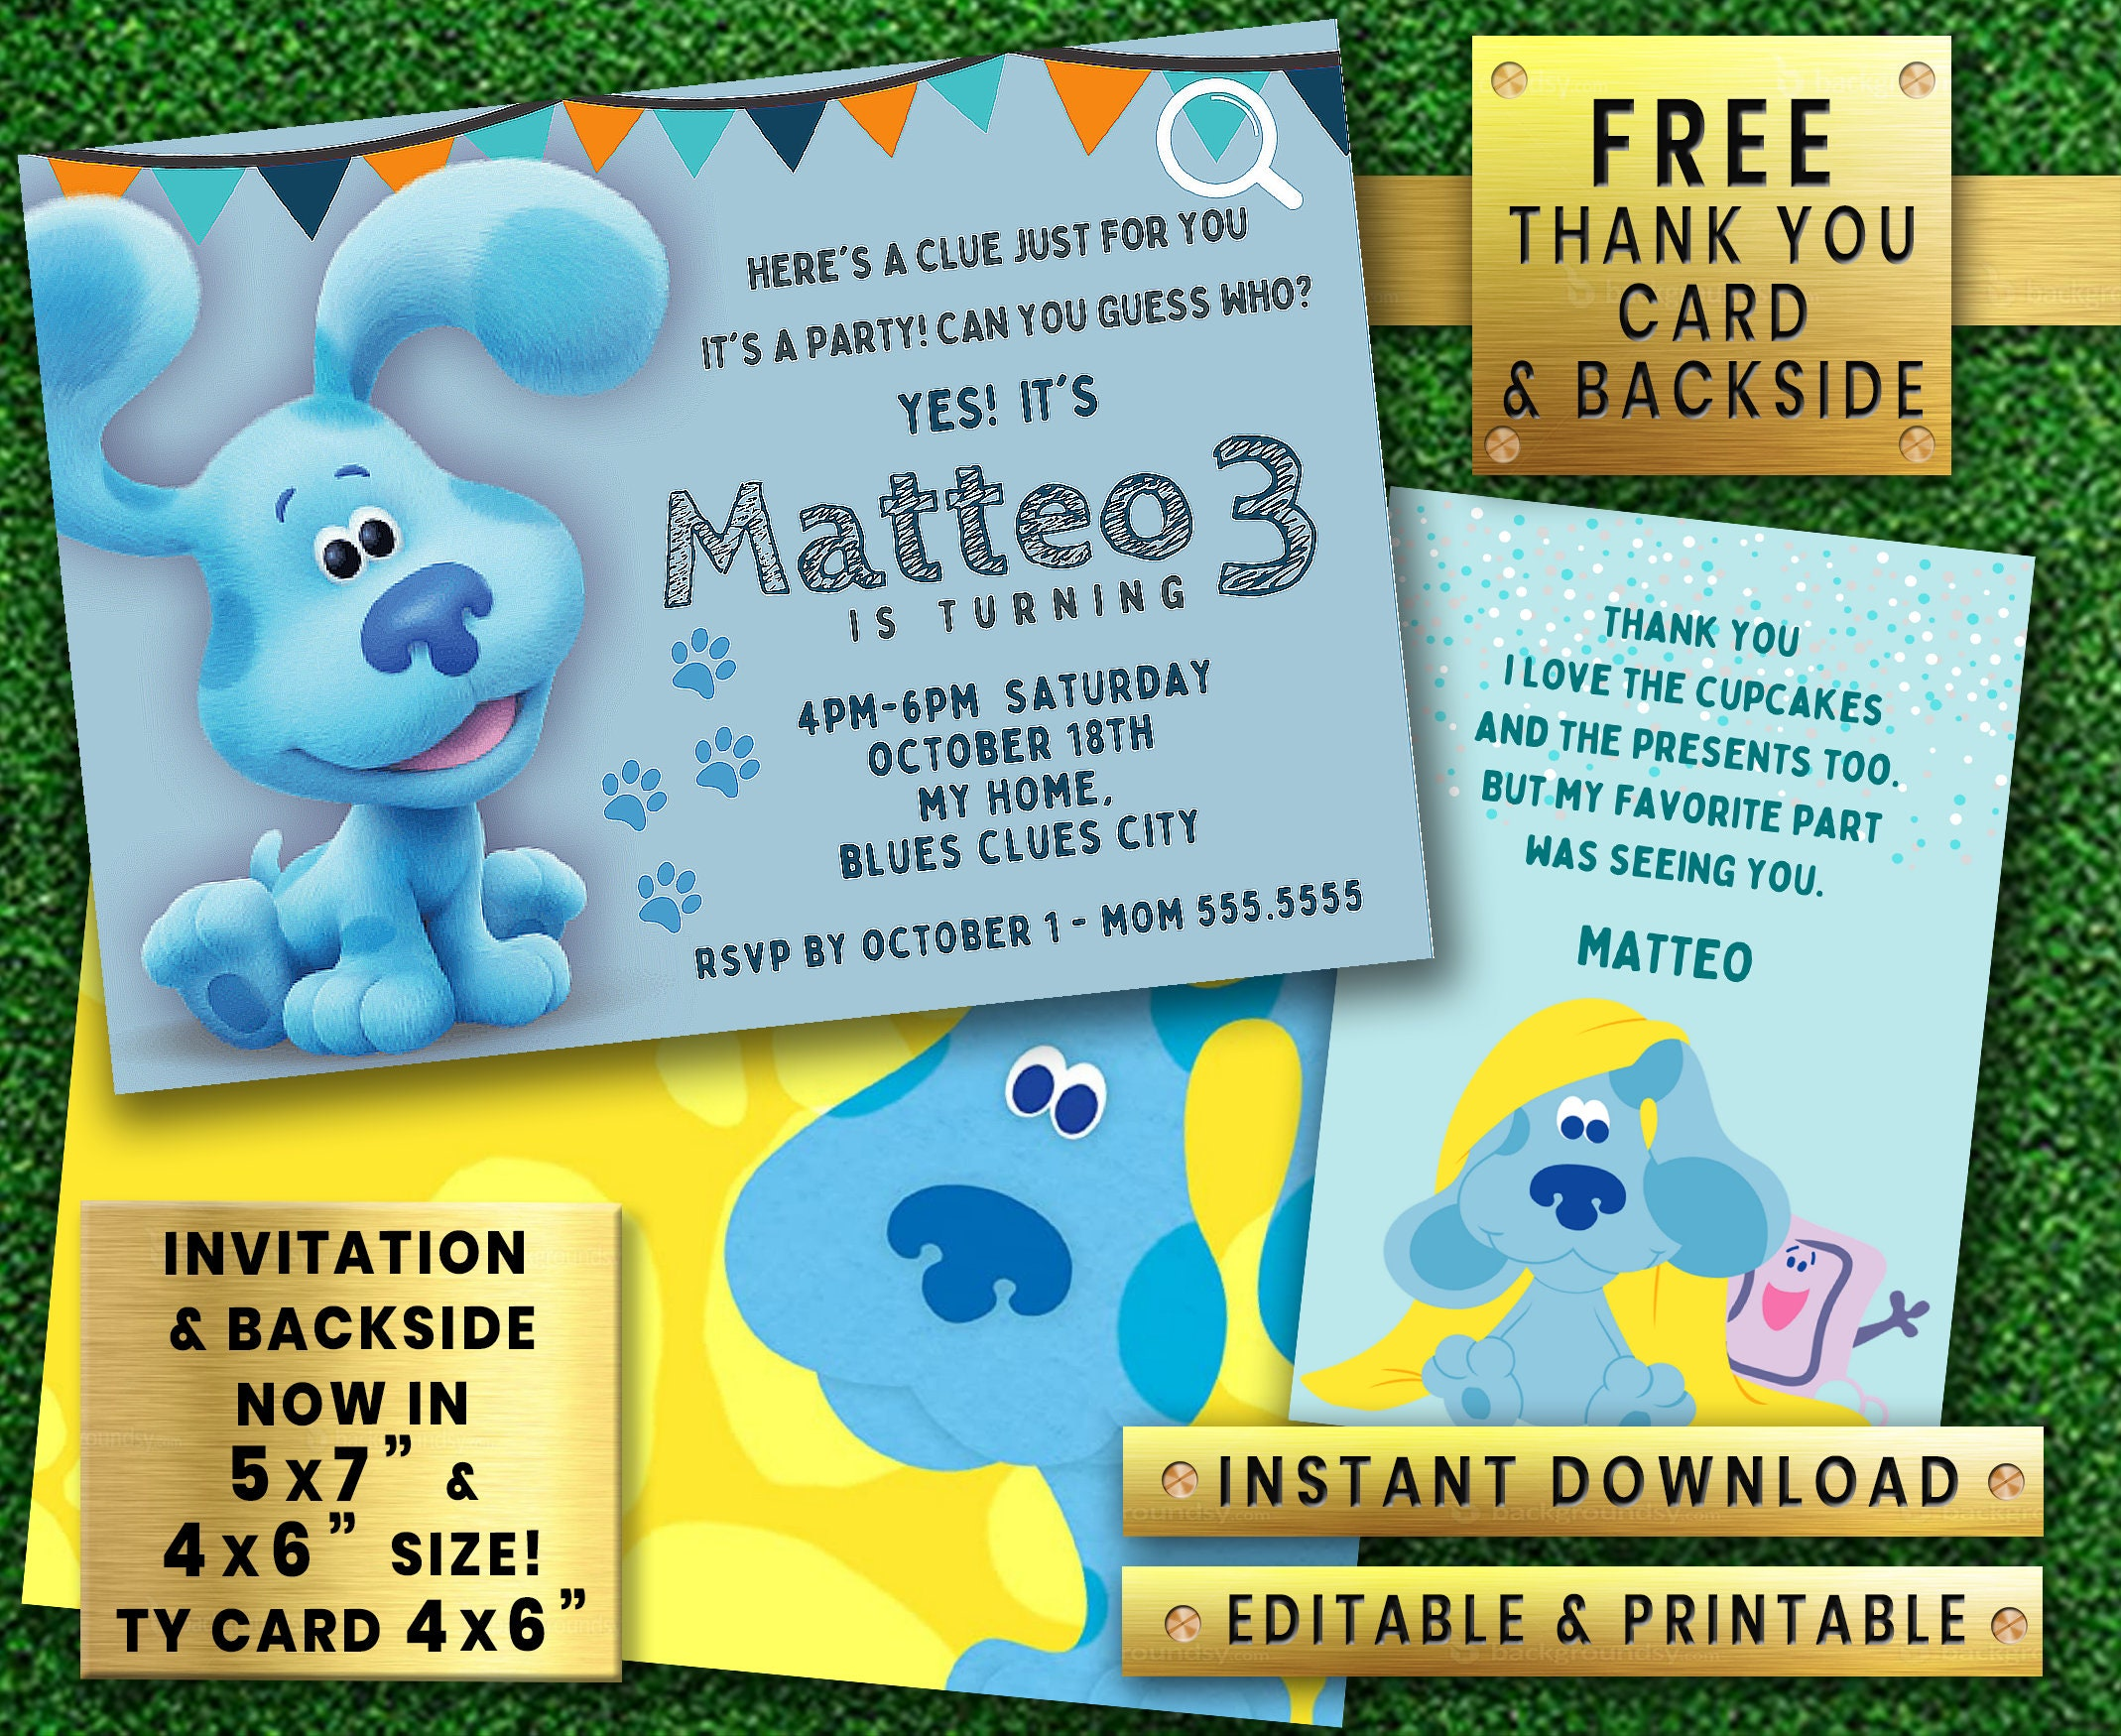 Blues Clues Instant Download Editable Printable Girl Boy Birthday Party Invitation Free Thank You Card